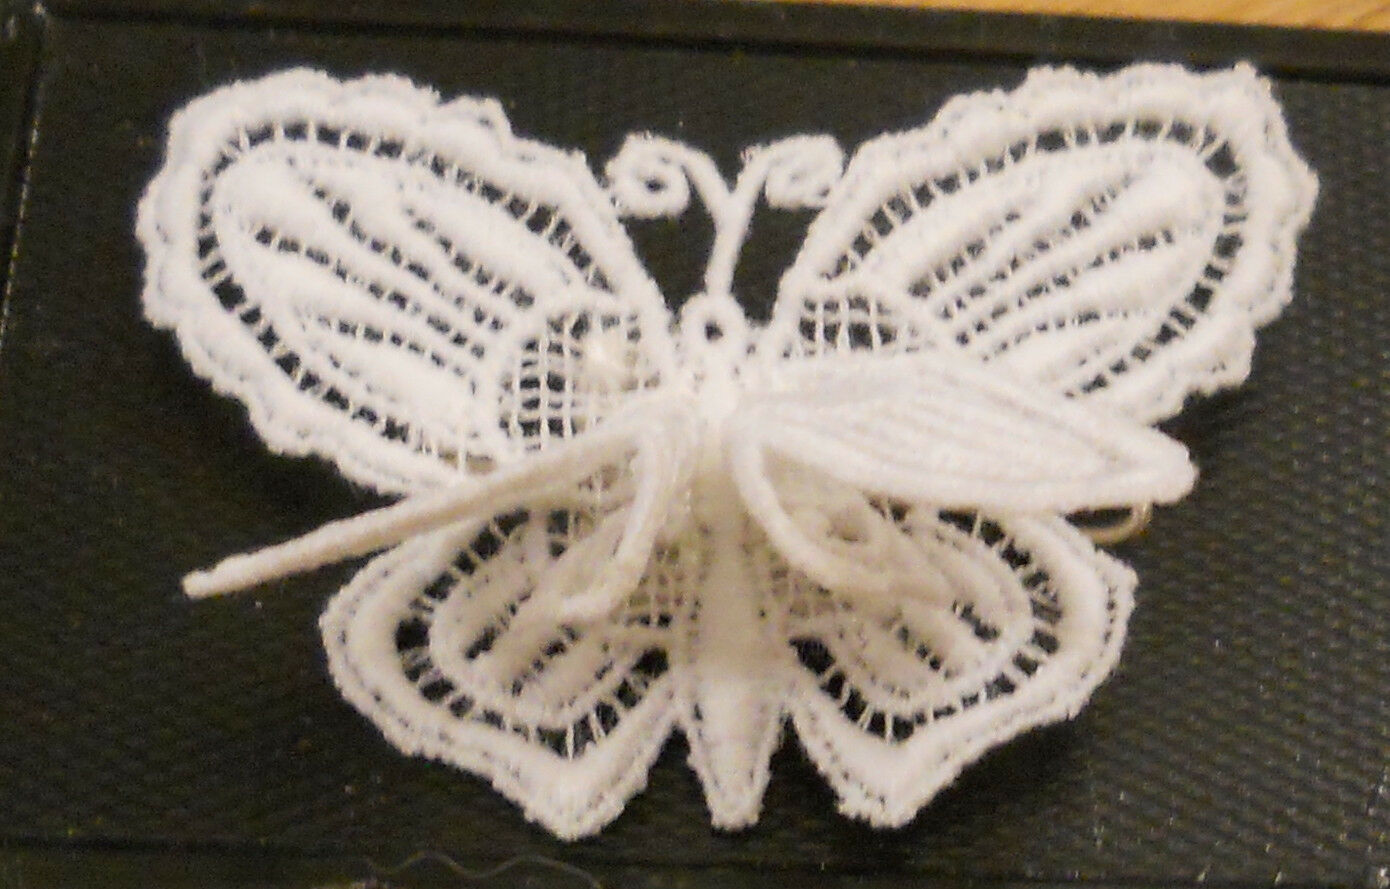 Primary image for Regence Belgian Lace Butterfly Pin Original Box Bruxelles 3D Wings True VTG